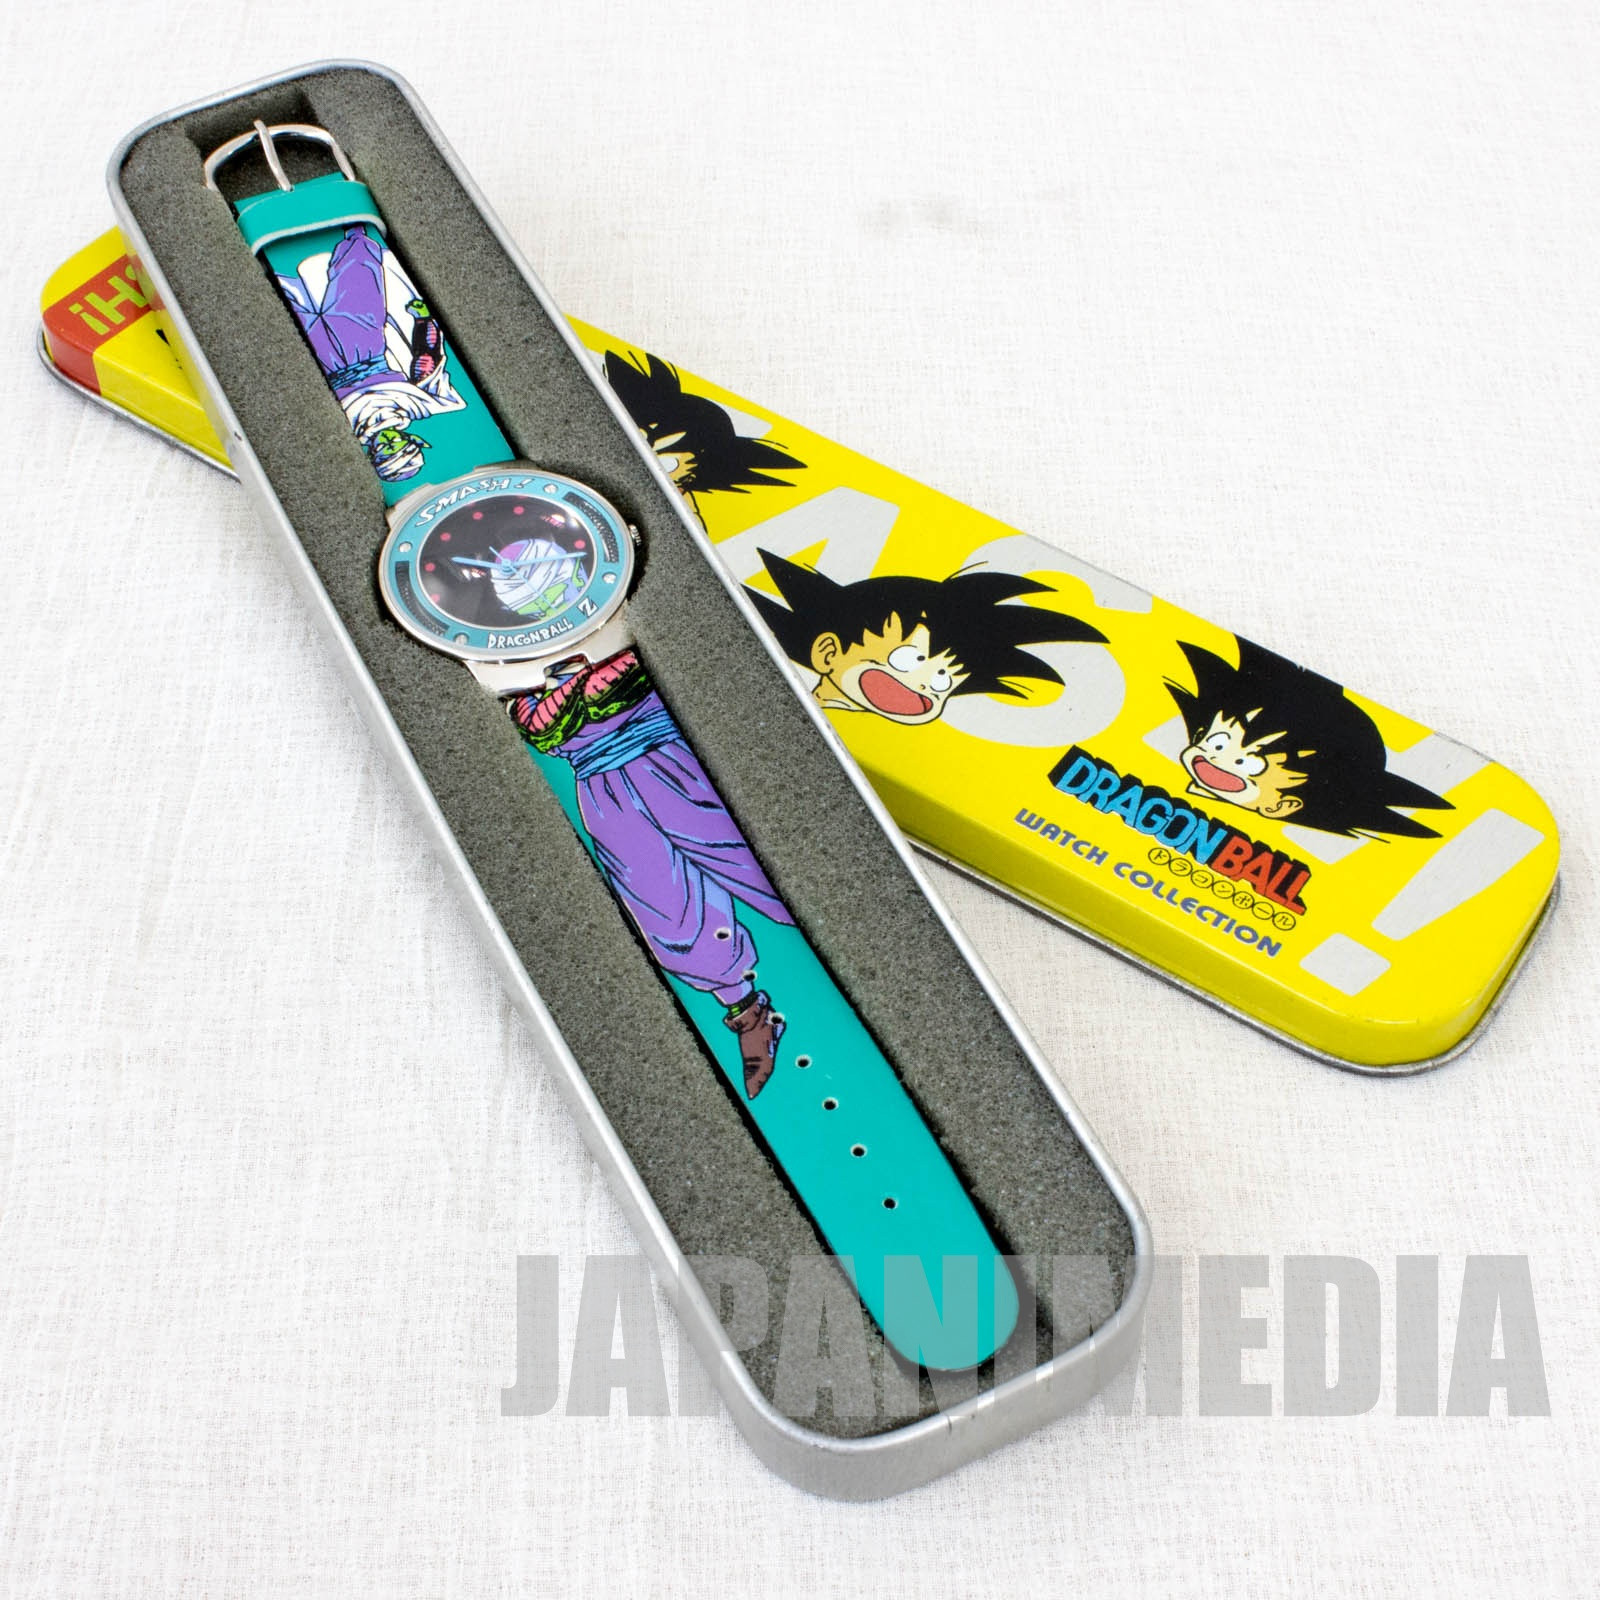 Retro RARE!! Dragon Ball Z Piccolo Wrist watch with Can case JAPAN ANIME MANGA